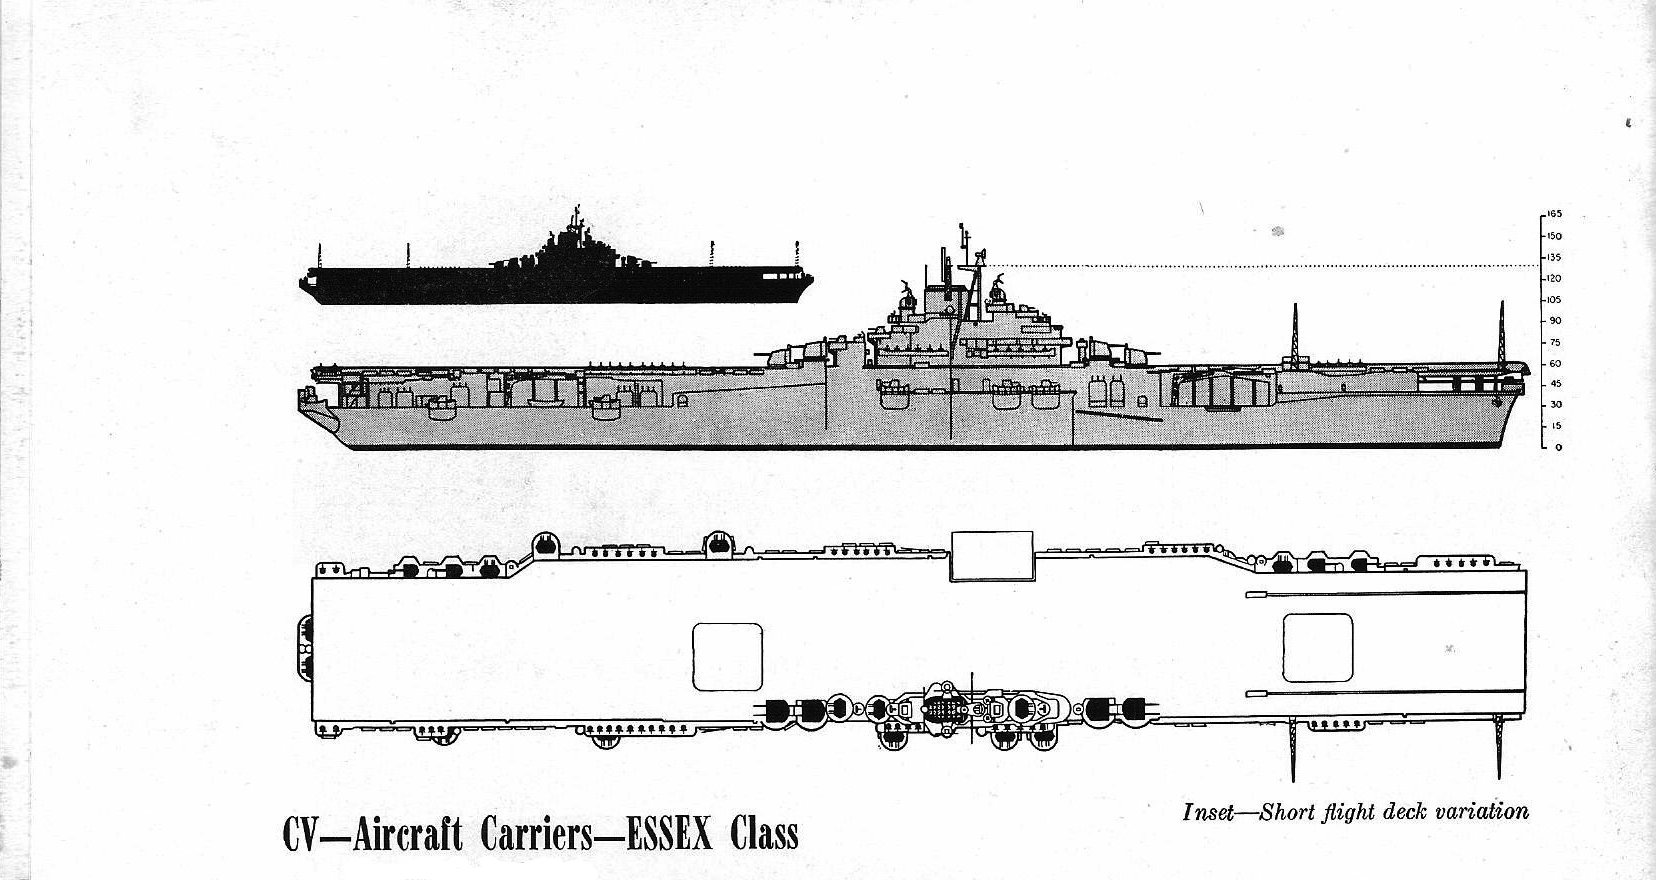 aircraft carrier flight deck diagram rcd spur wiring the pacific war online encyclopedia essex class u s fleet carriers schematic of